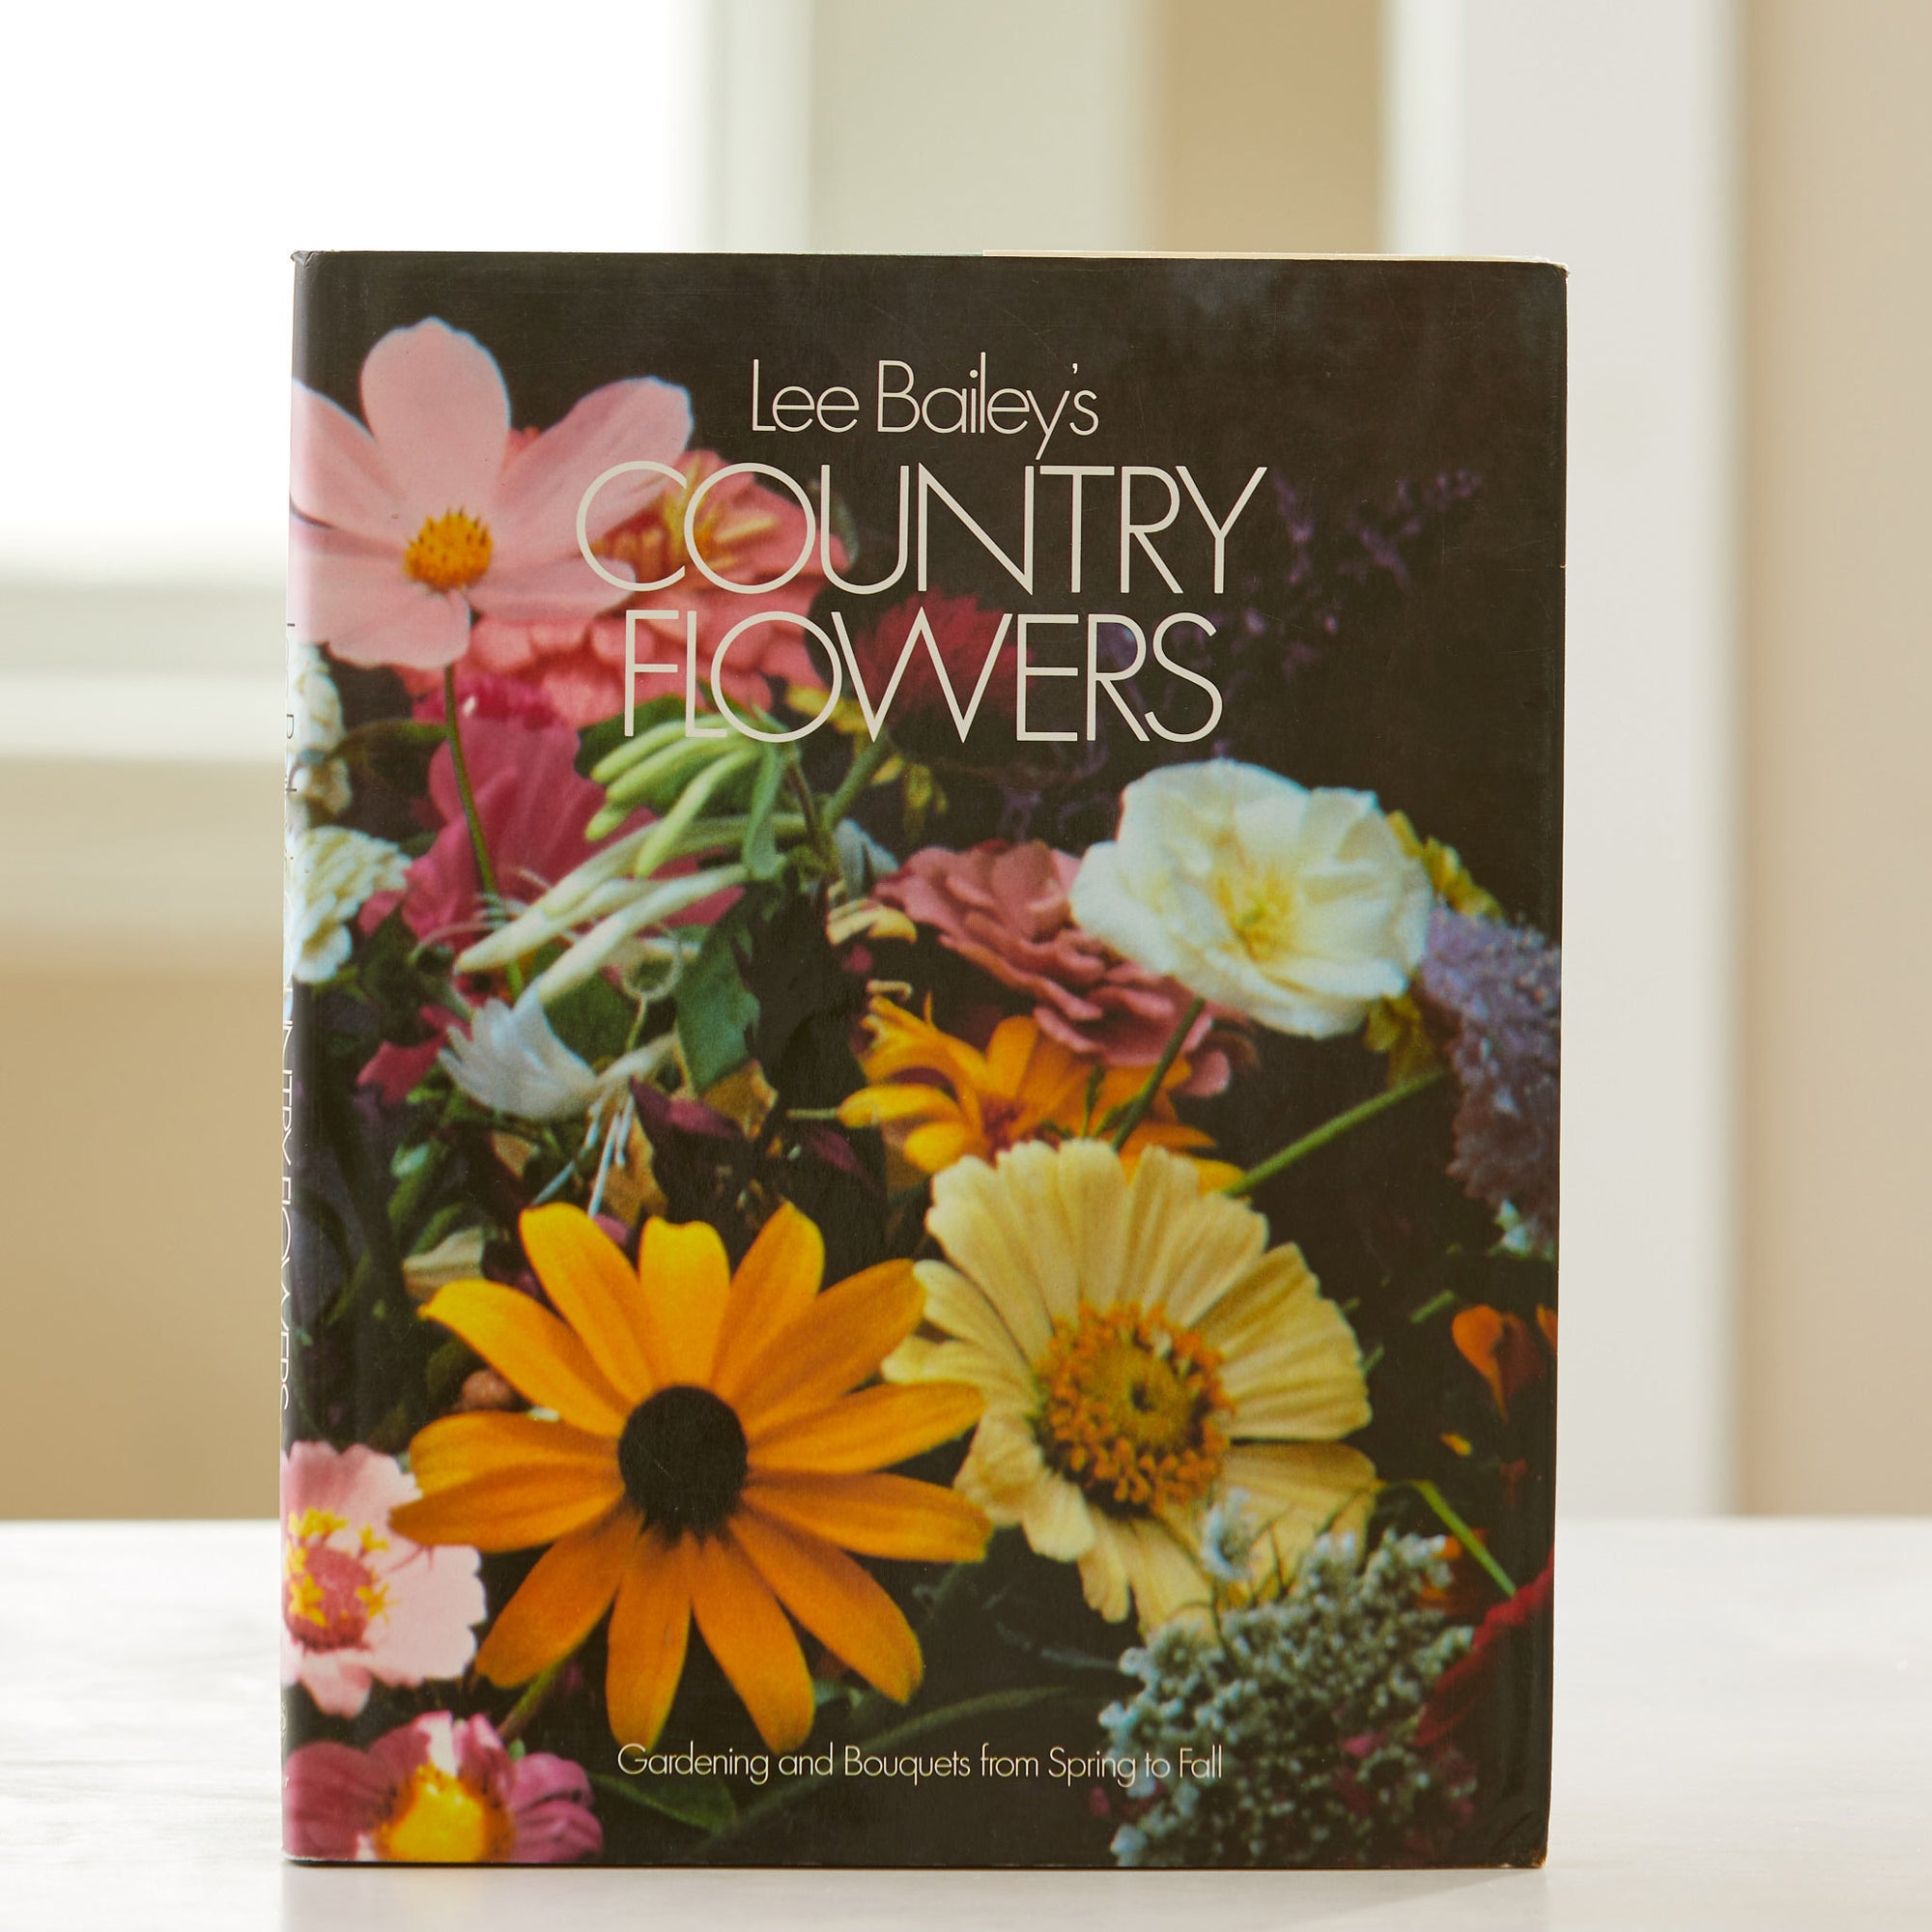 Lee Bailey's County Flowers. Monthly gardening guide, April-Sept. Illustrates perennial plants & how to make a garden bed. Best flower gardening book.